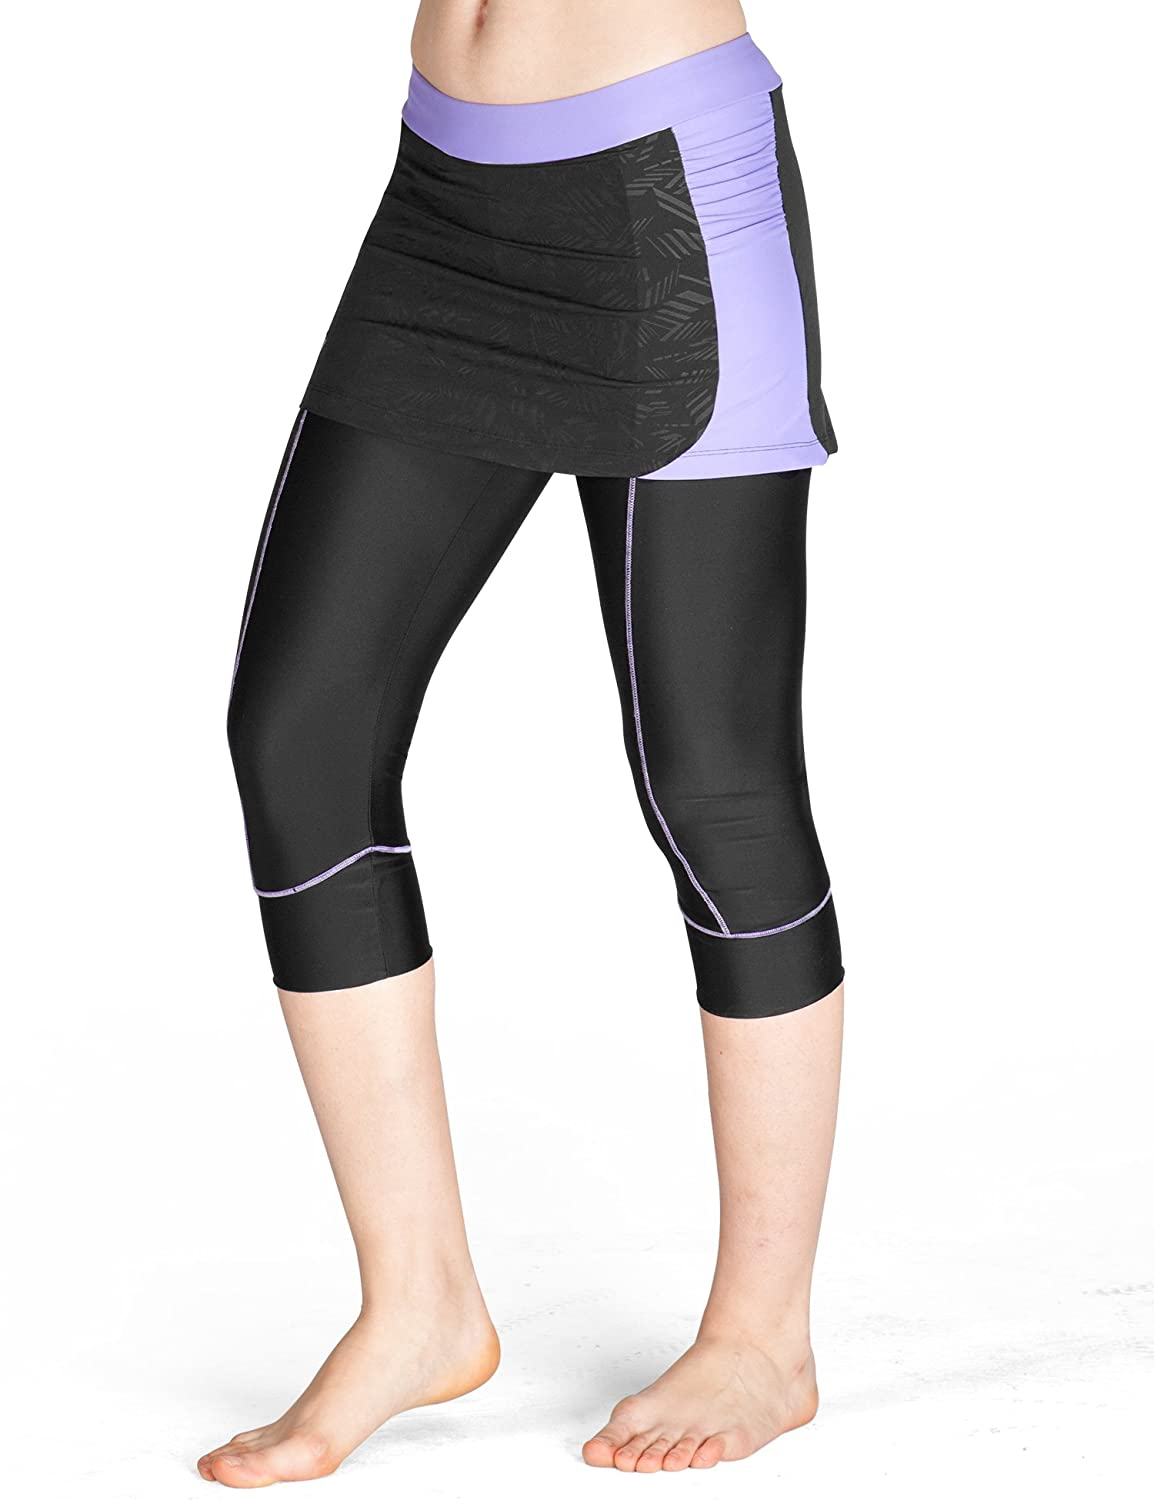 Lameda Women's Cycling Capri Pants Padded Skirted Shorts Cropped Leggings for Running Biking Purple Small 1150